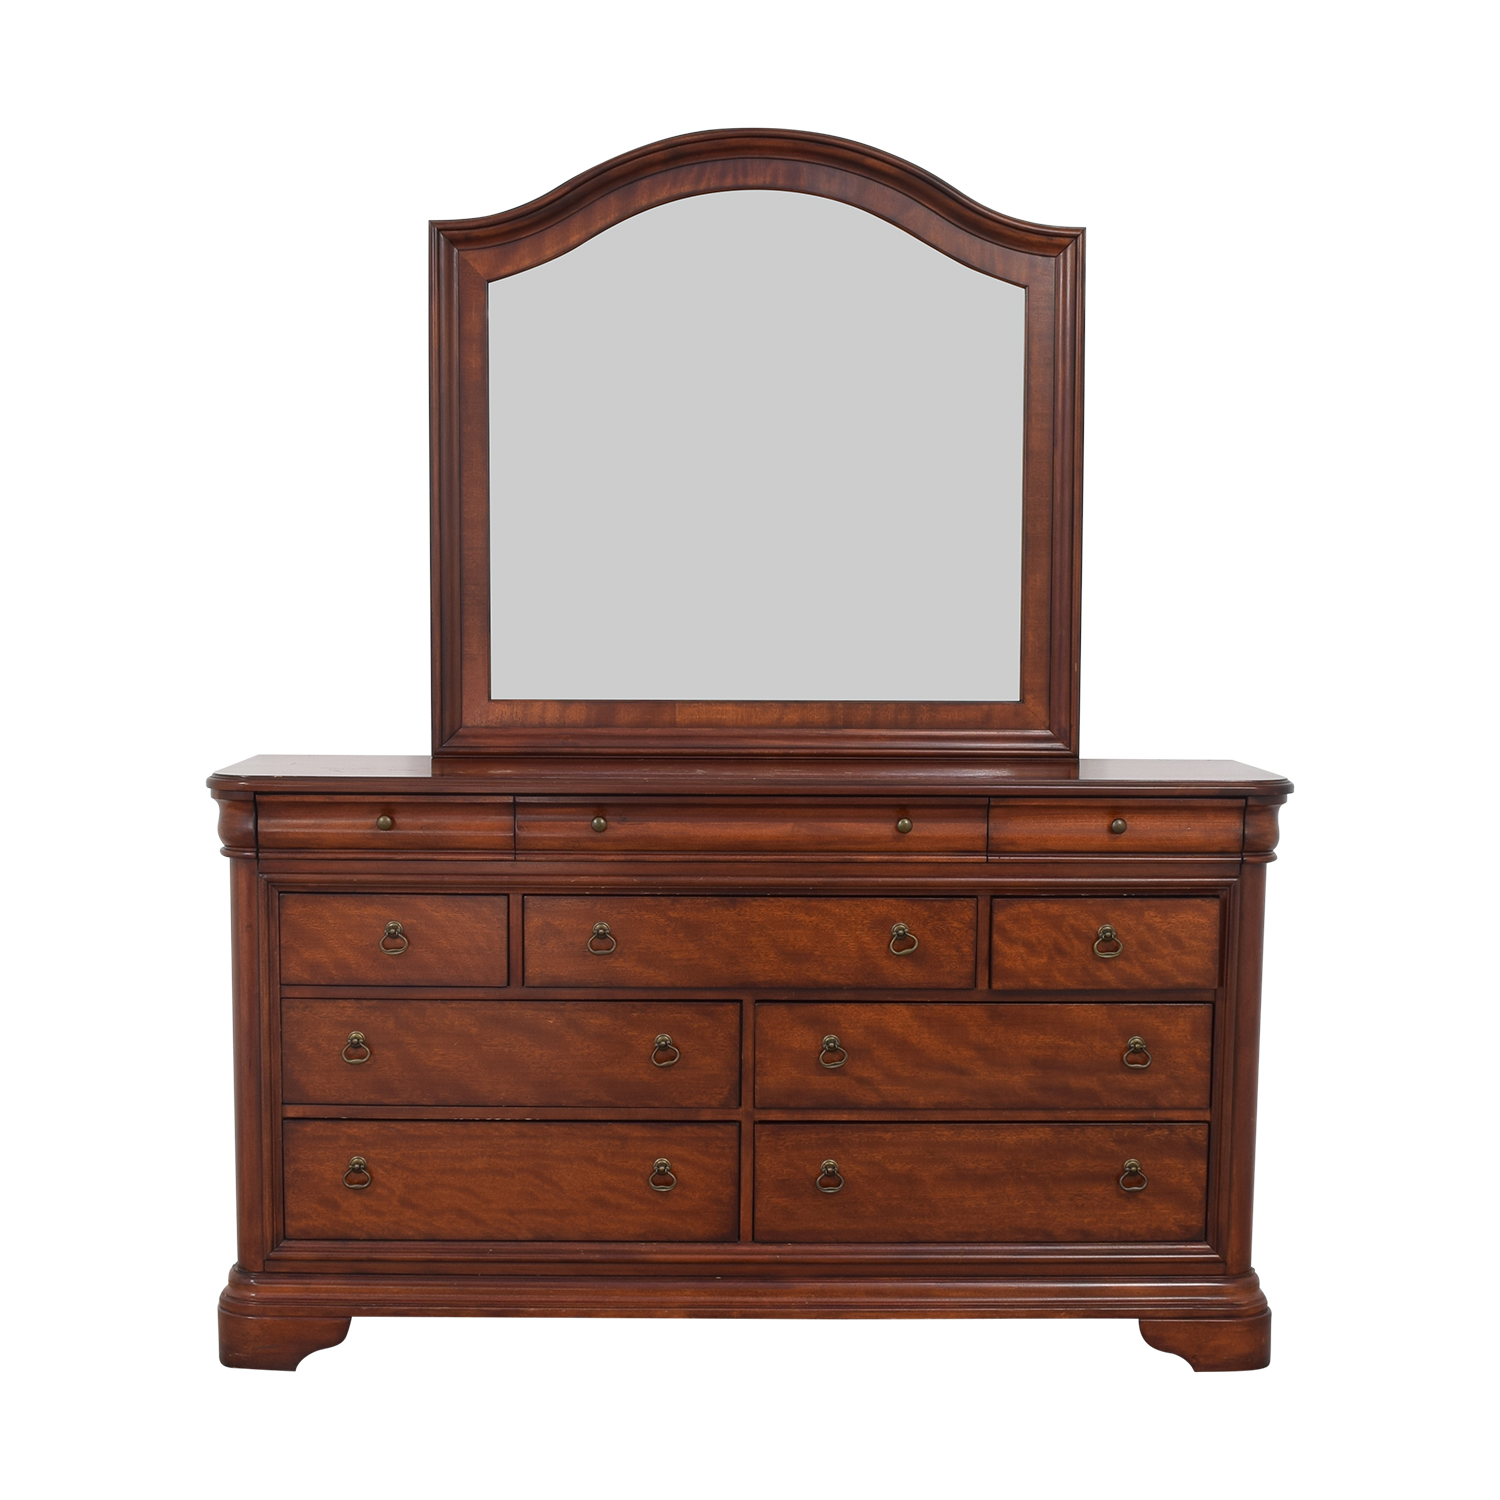 Macy's Macy's Bordeaux II Ten Drawer Dresser with Mirror used